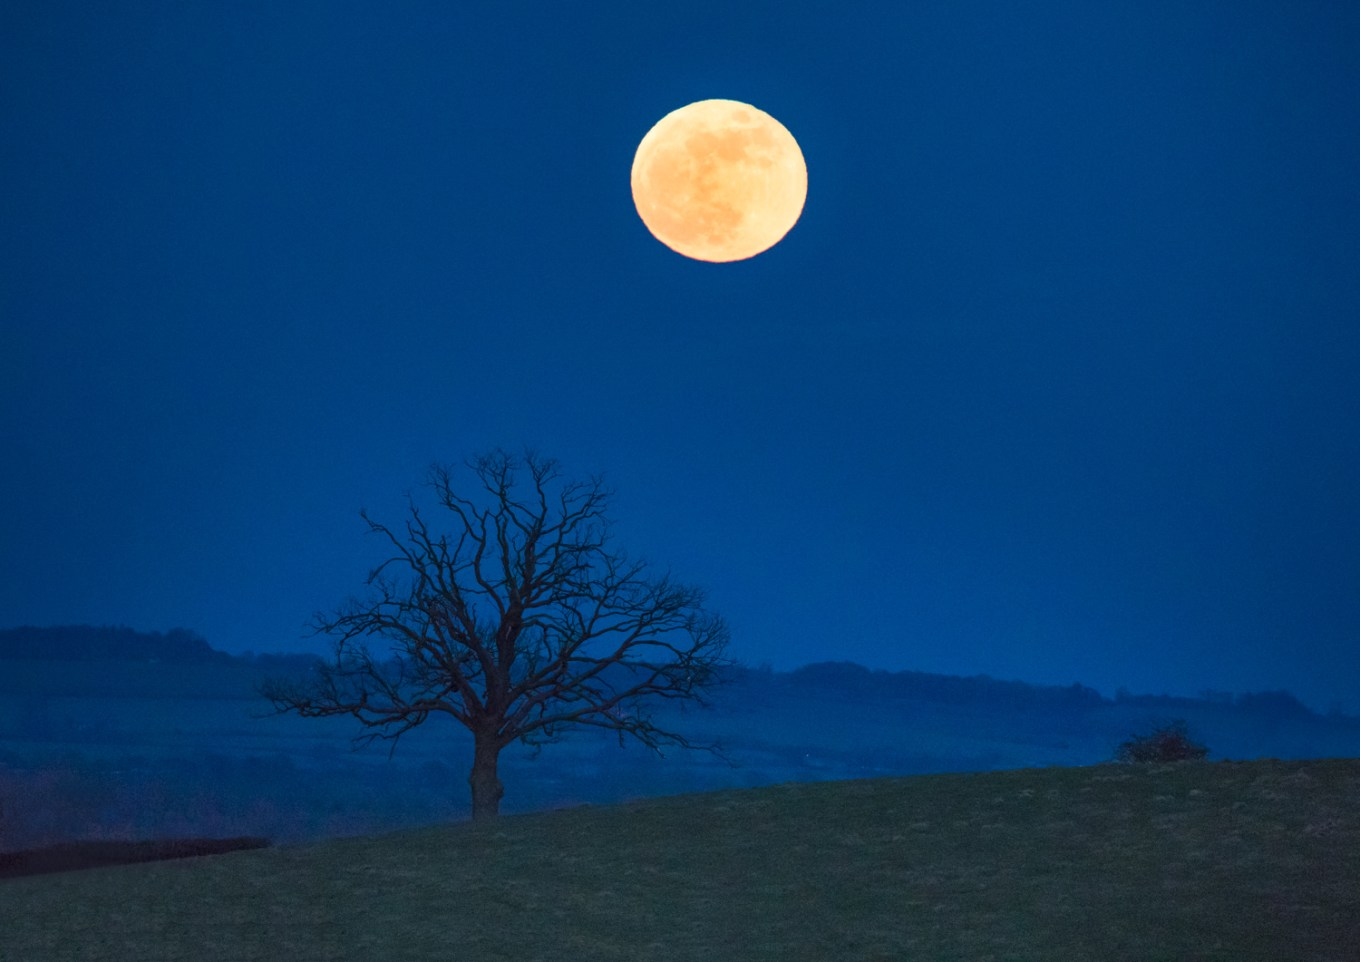 Nighttime photography 02 - full moon landscape at night